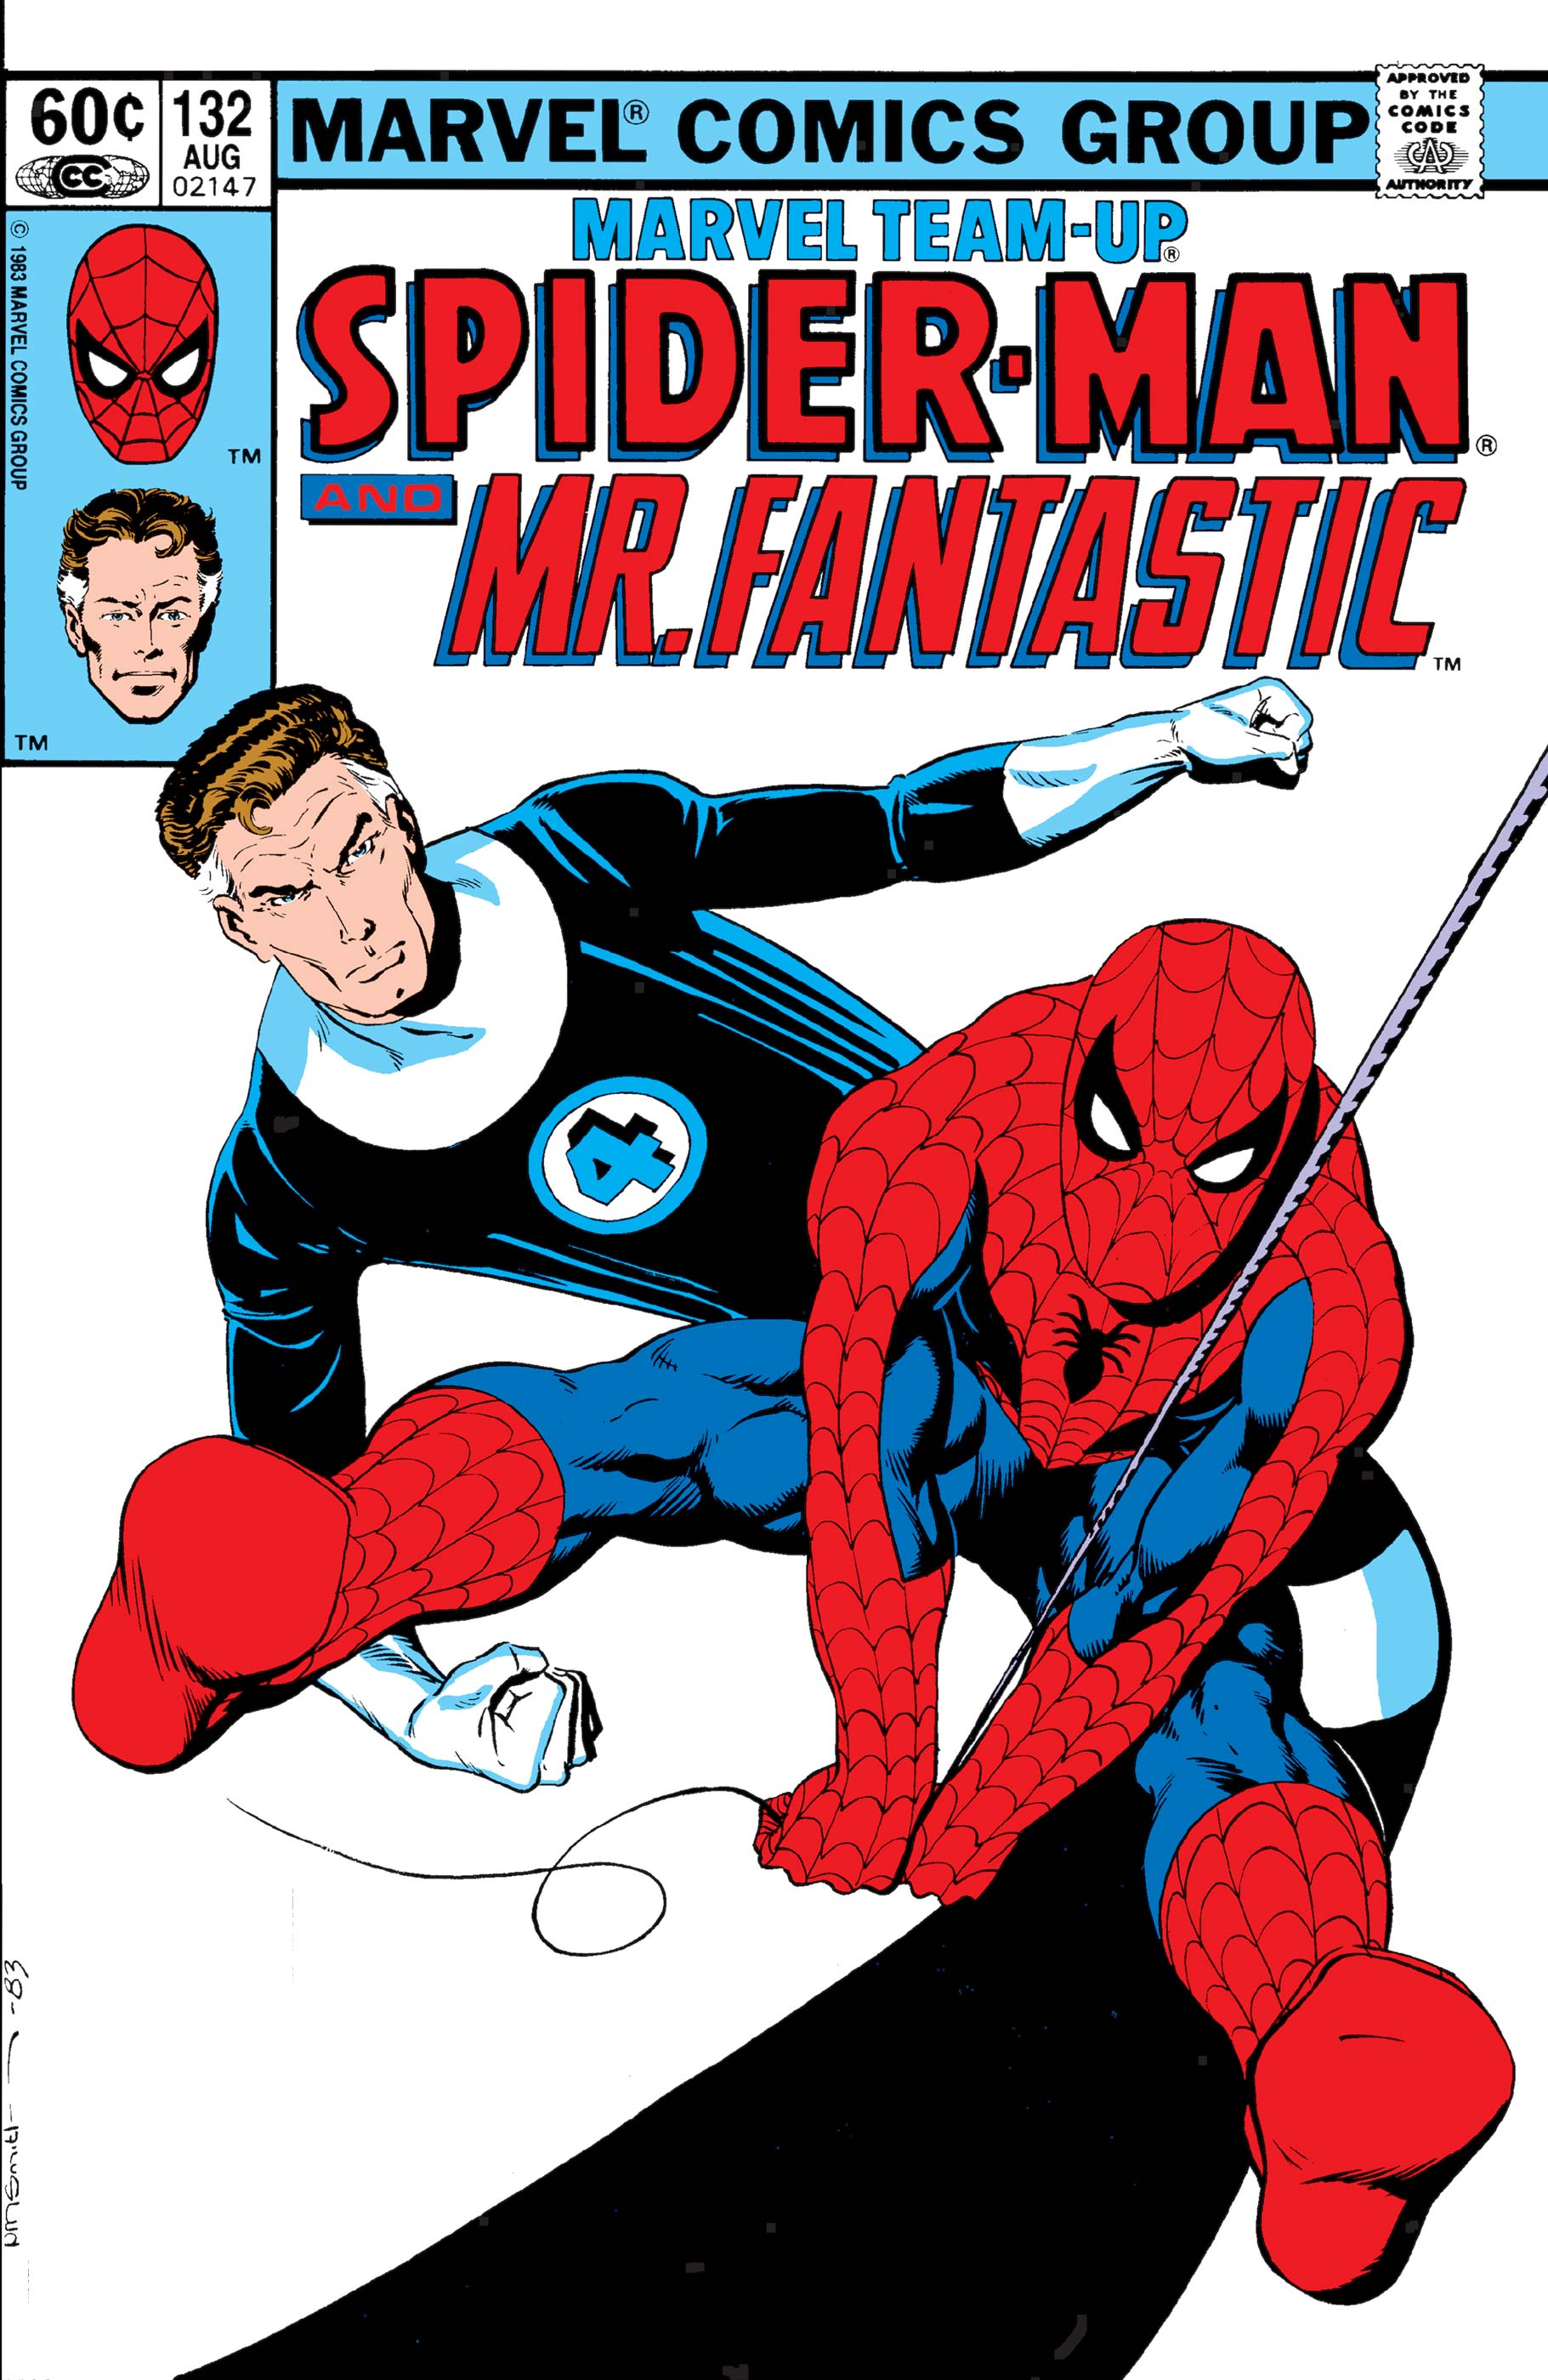 Marvel Team-Up (1972) #132